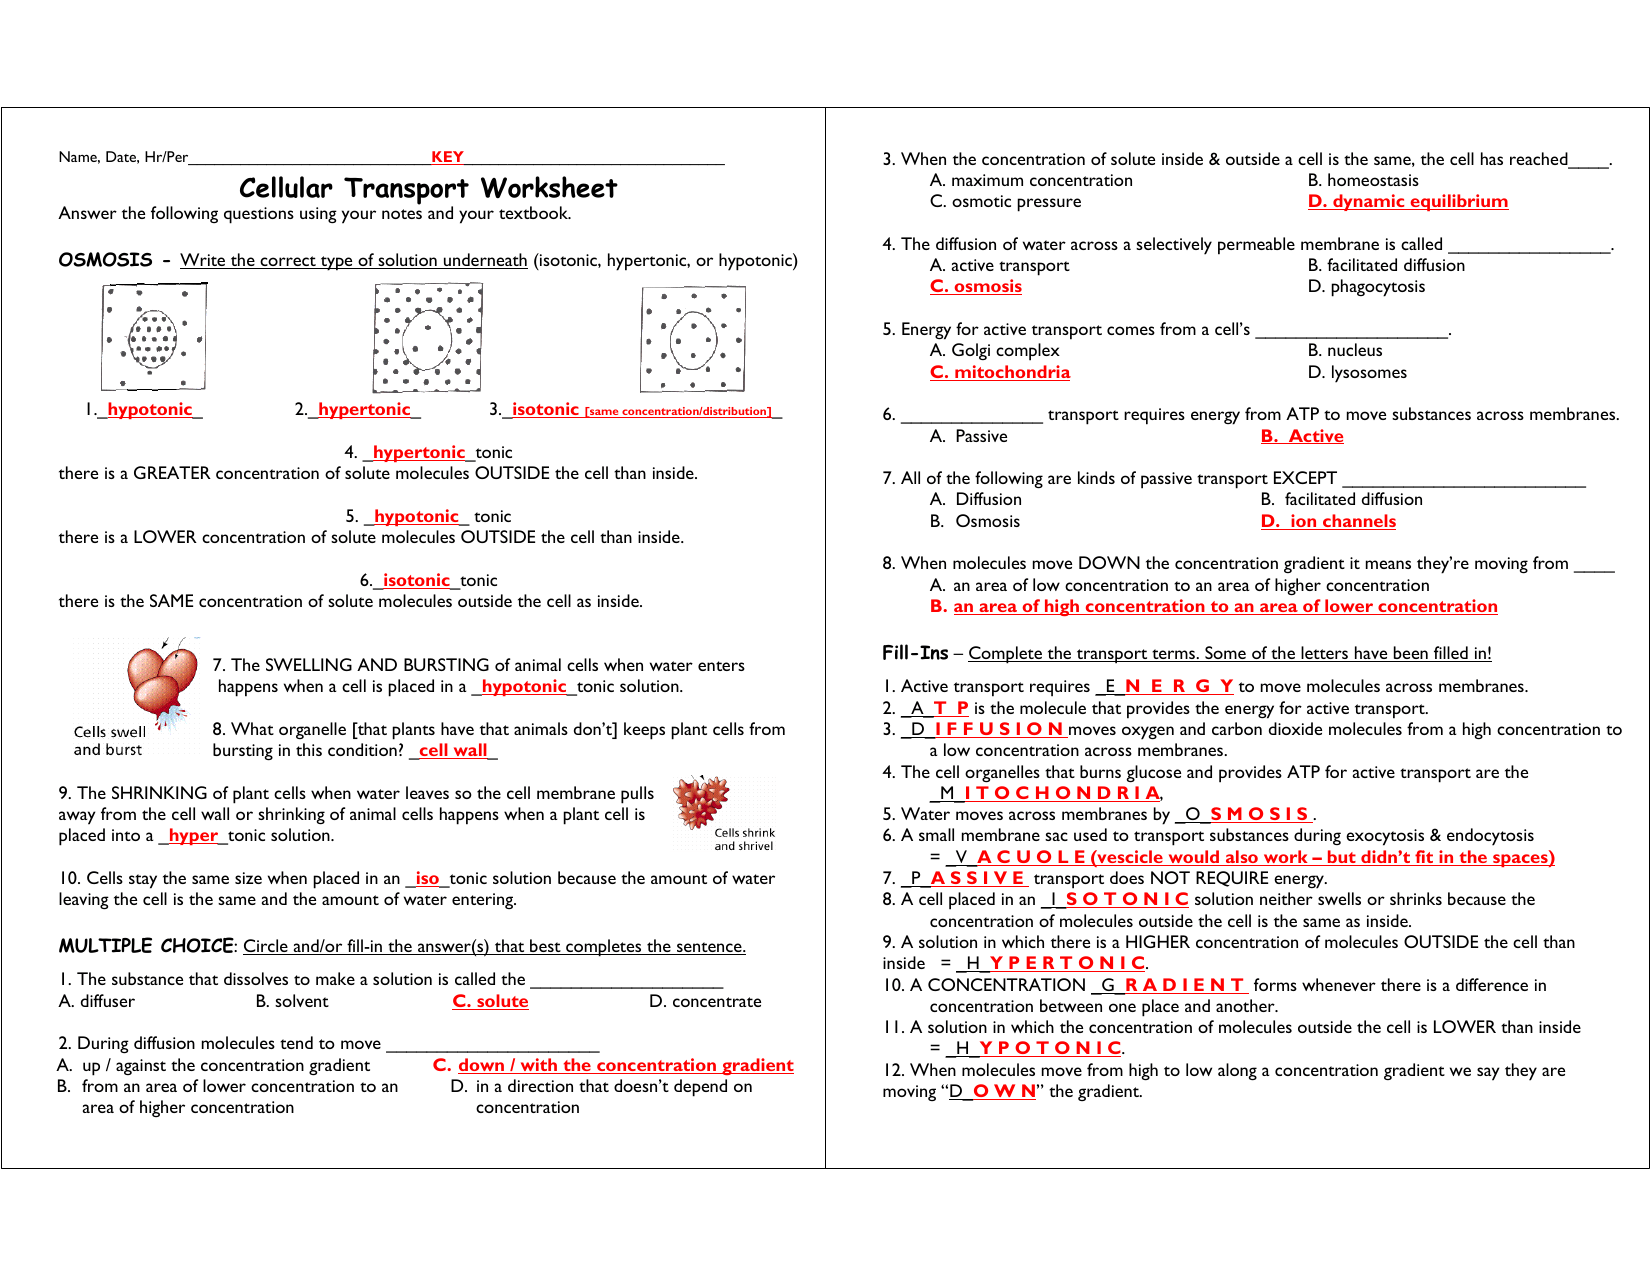 Worksheet Cellular Transport Worksheet Answer Key Grass Fedjp Worksheet Study Site